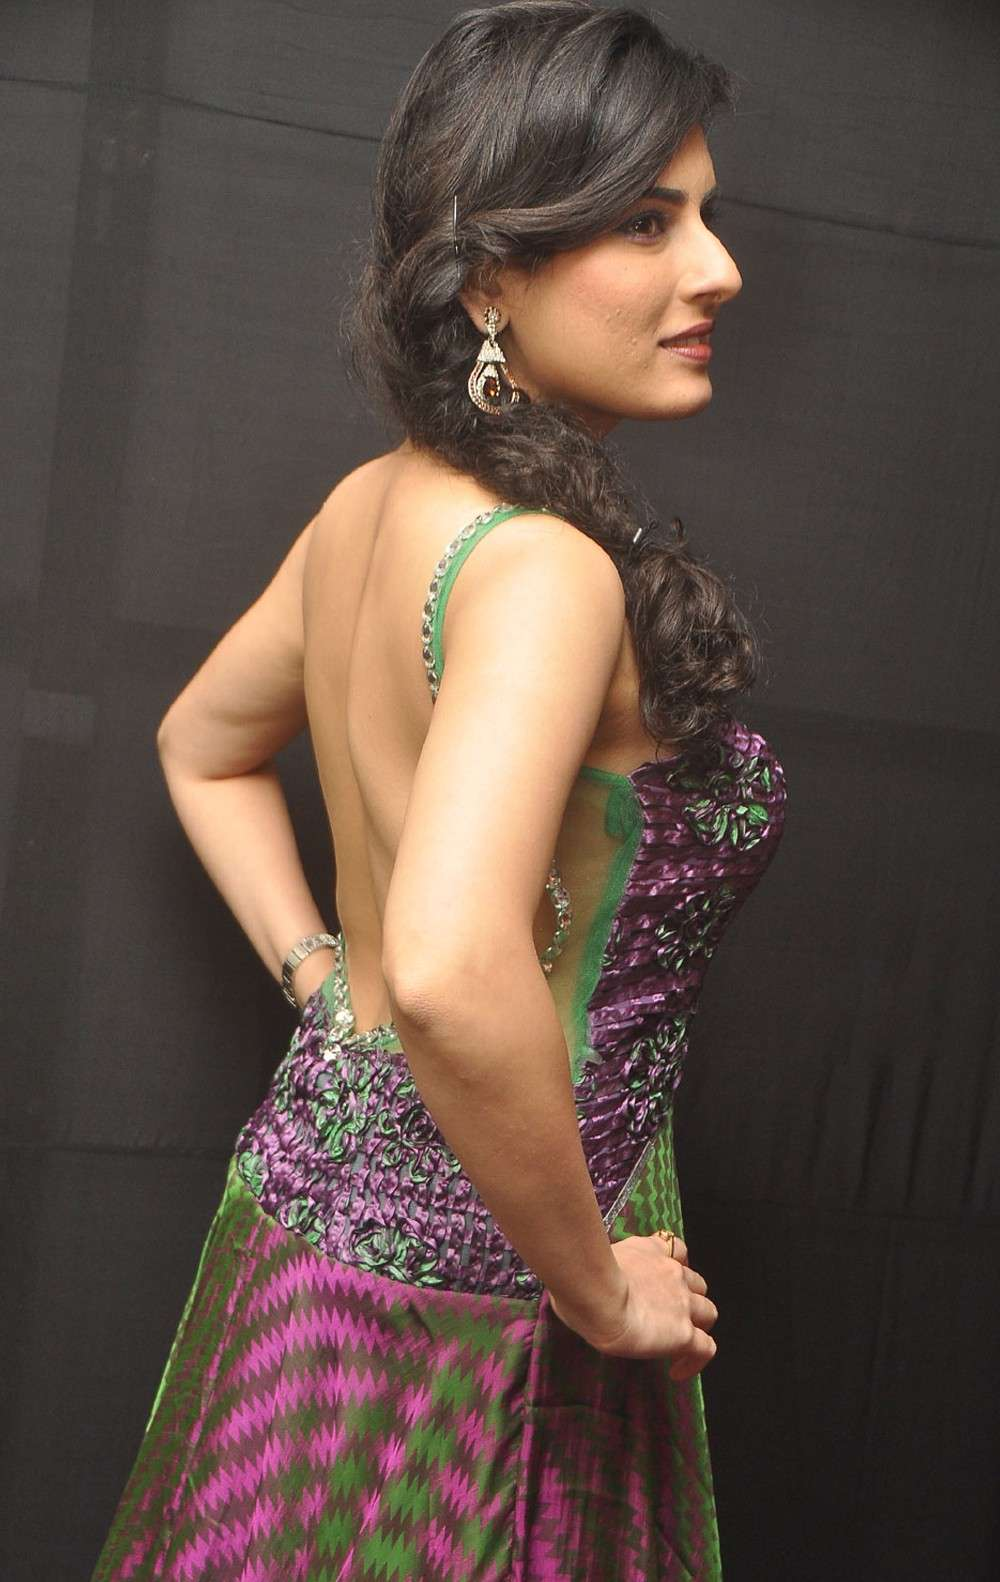 Archana Photo Gallery Archan11